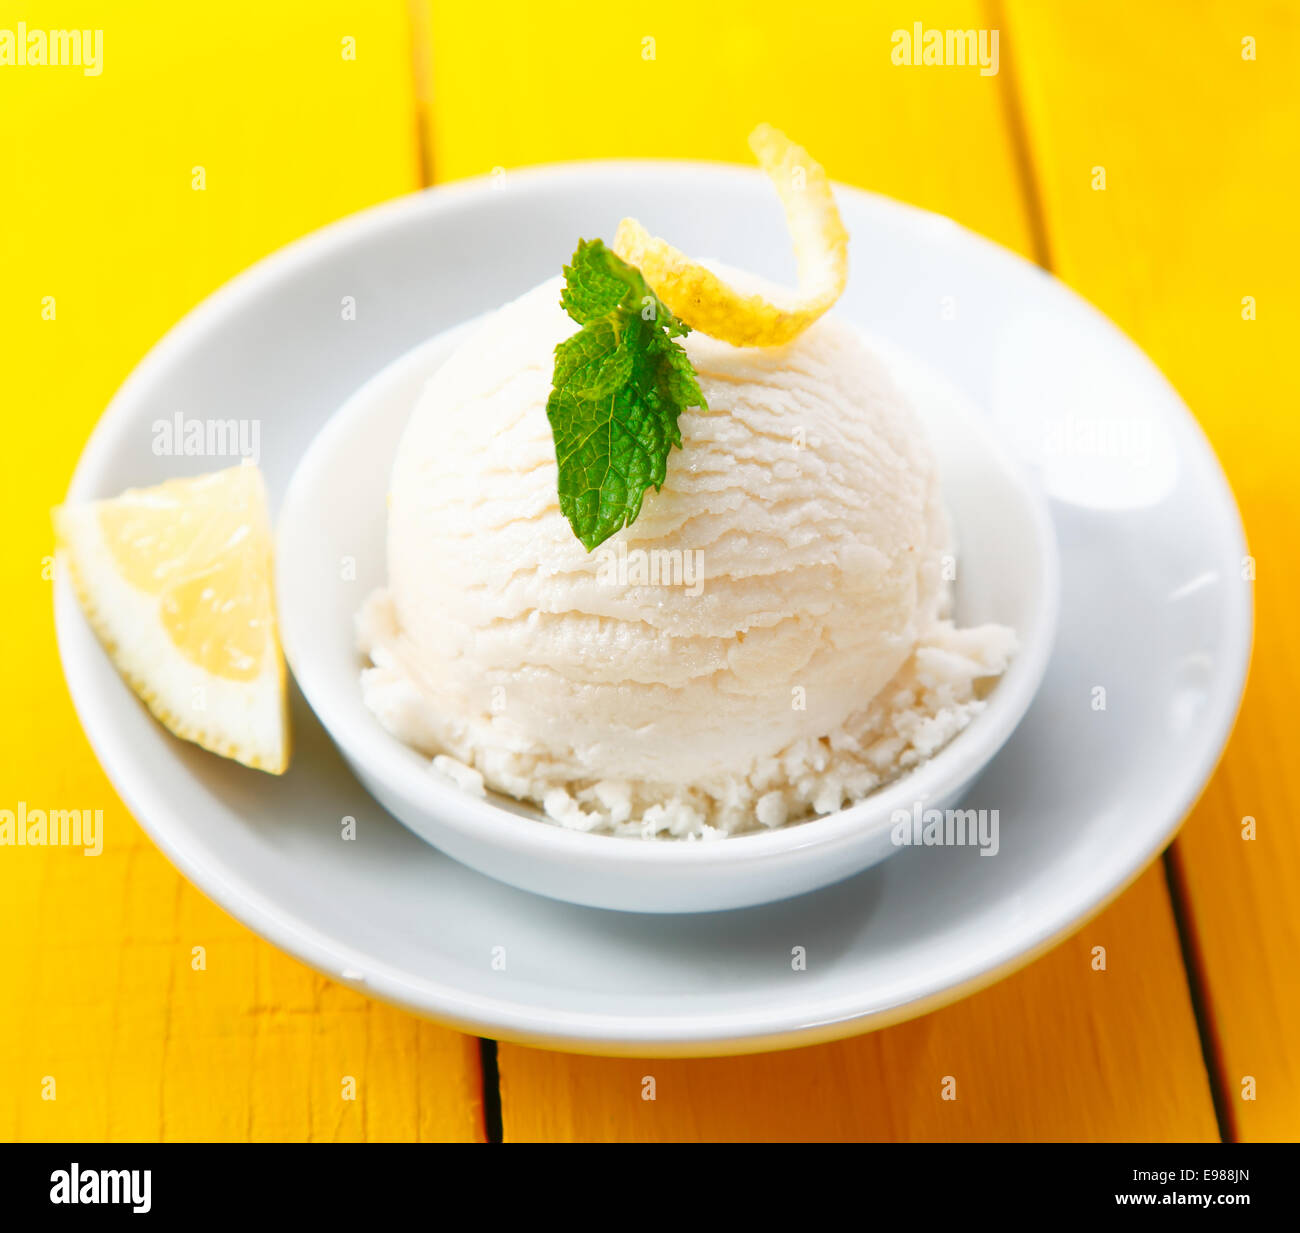 High angle view of a serving of refreshing tangy lemon sorbet served with zest and a slice of lemon - Stock Image